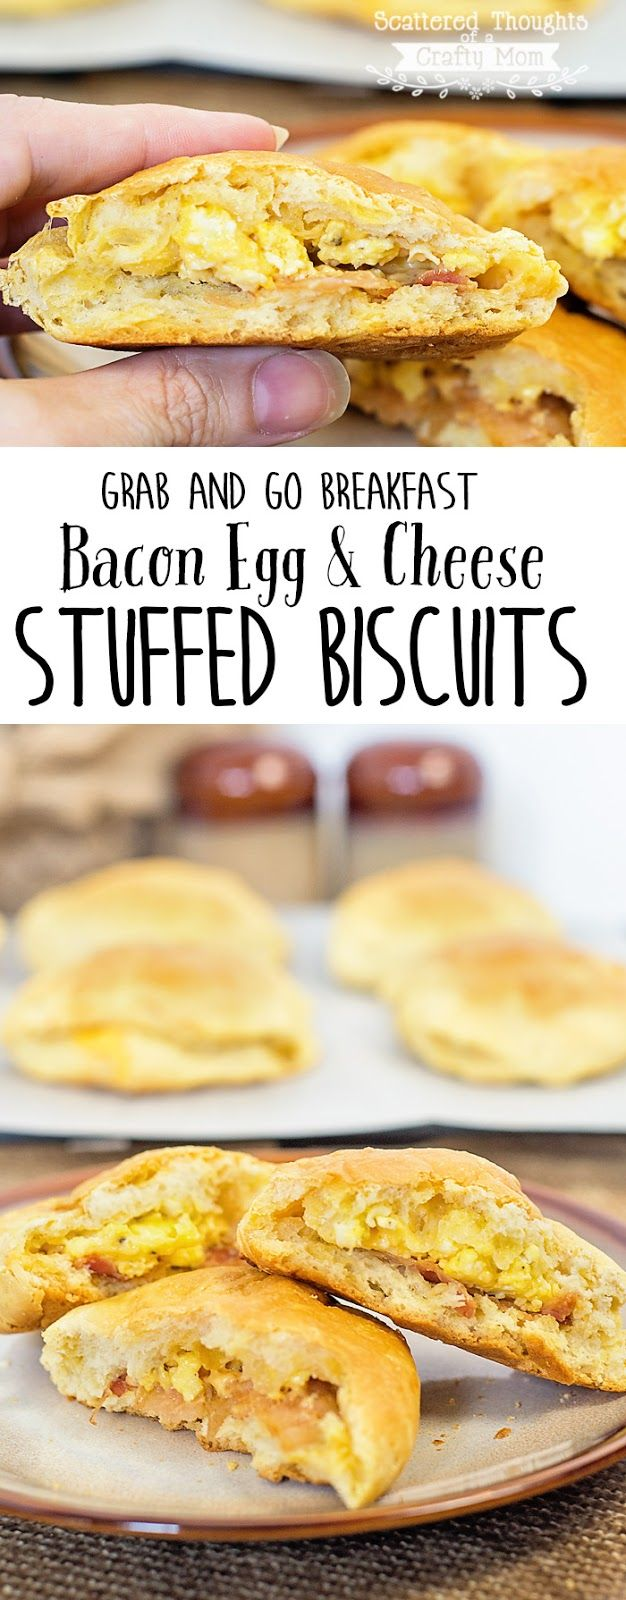 "These Bacon, Egg and Cheese Stuffed Biscuits are prepared ahead of time so you can just ""grab and go"" for a hot breakfast when rushing out the door! The kids love them and you will love how easy they are to put together! #warmtraditions #ad"